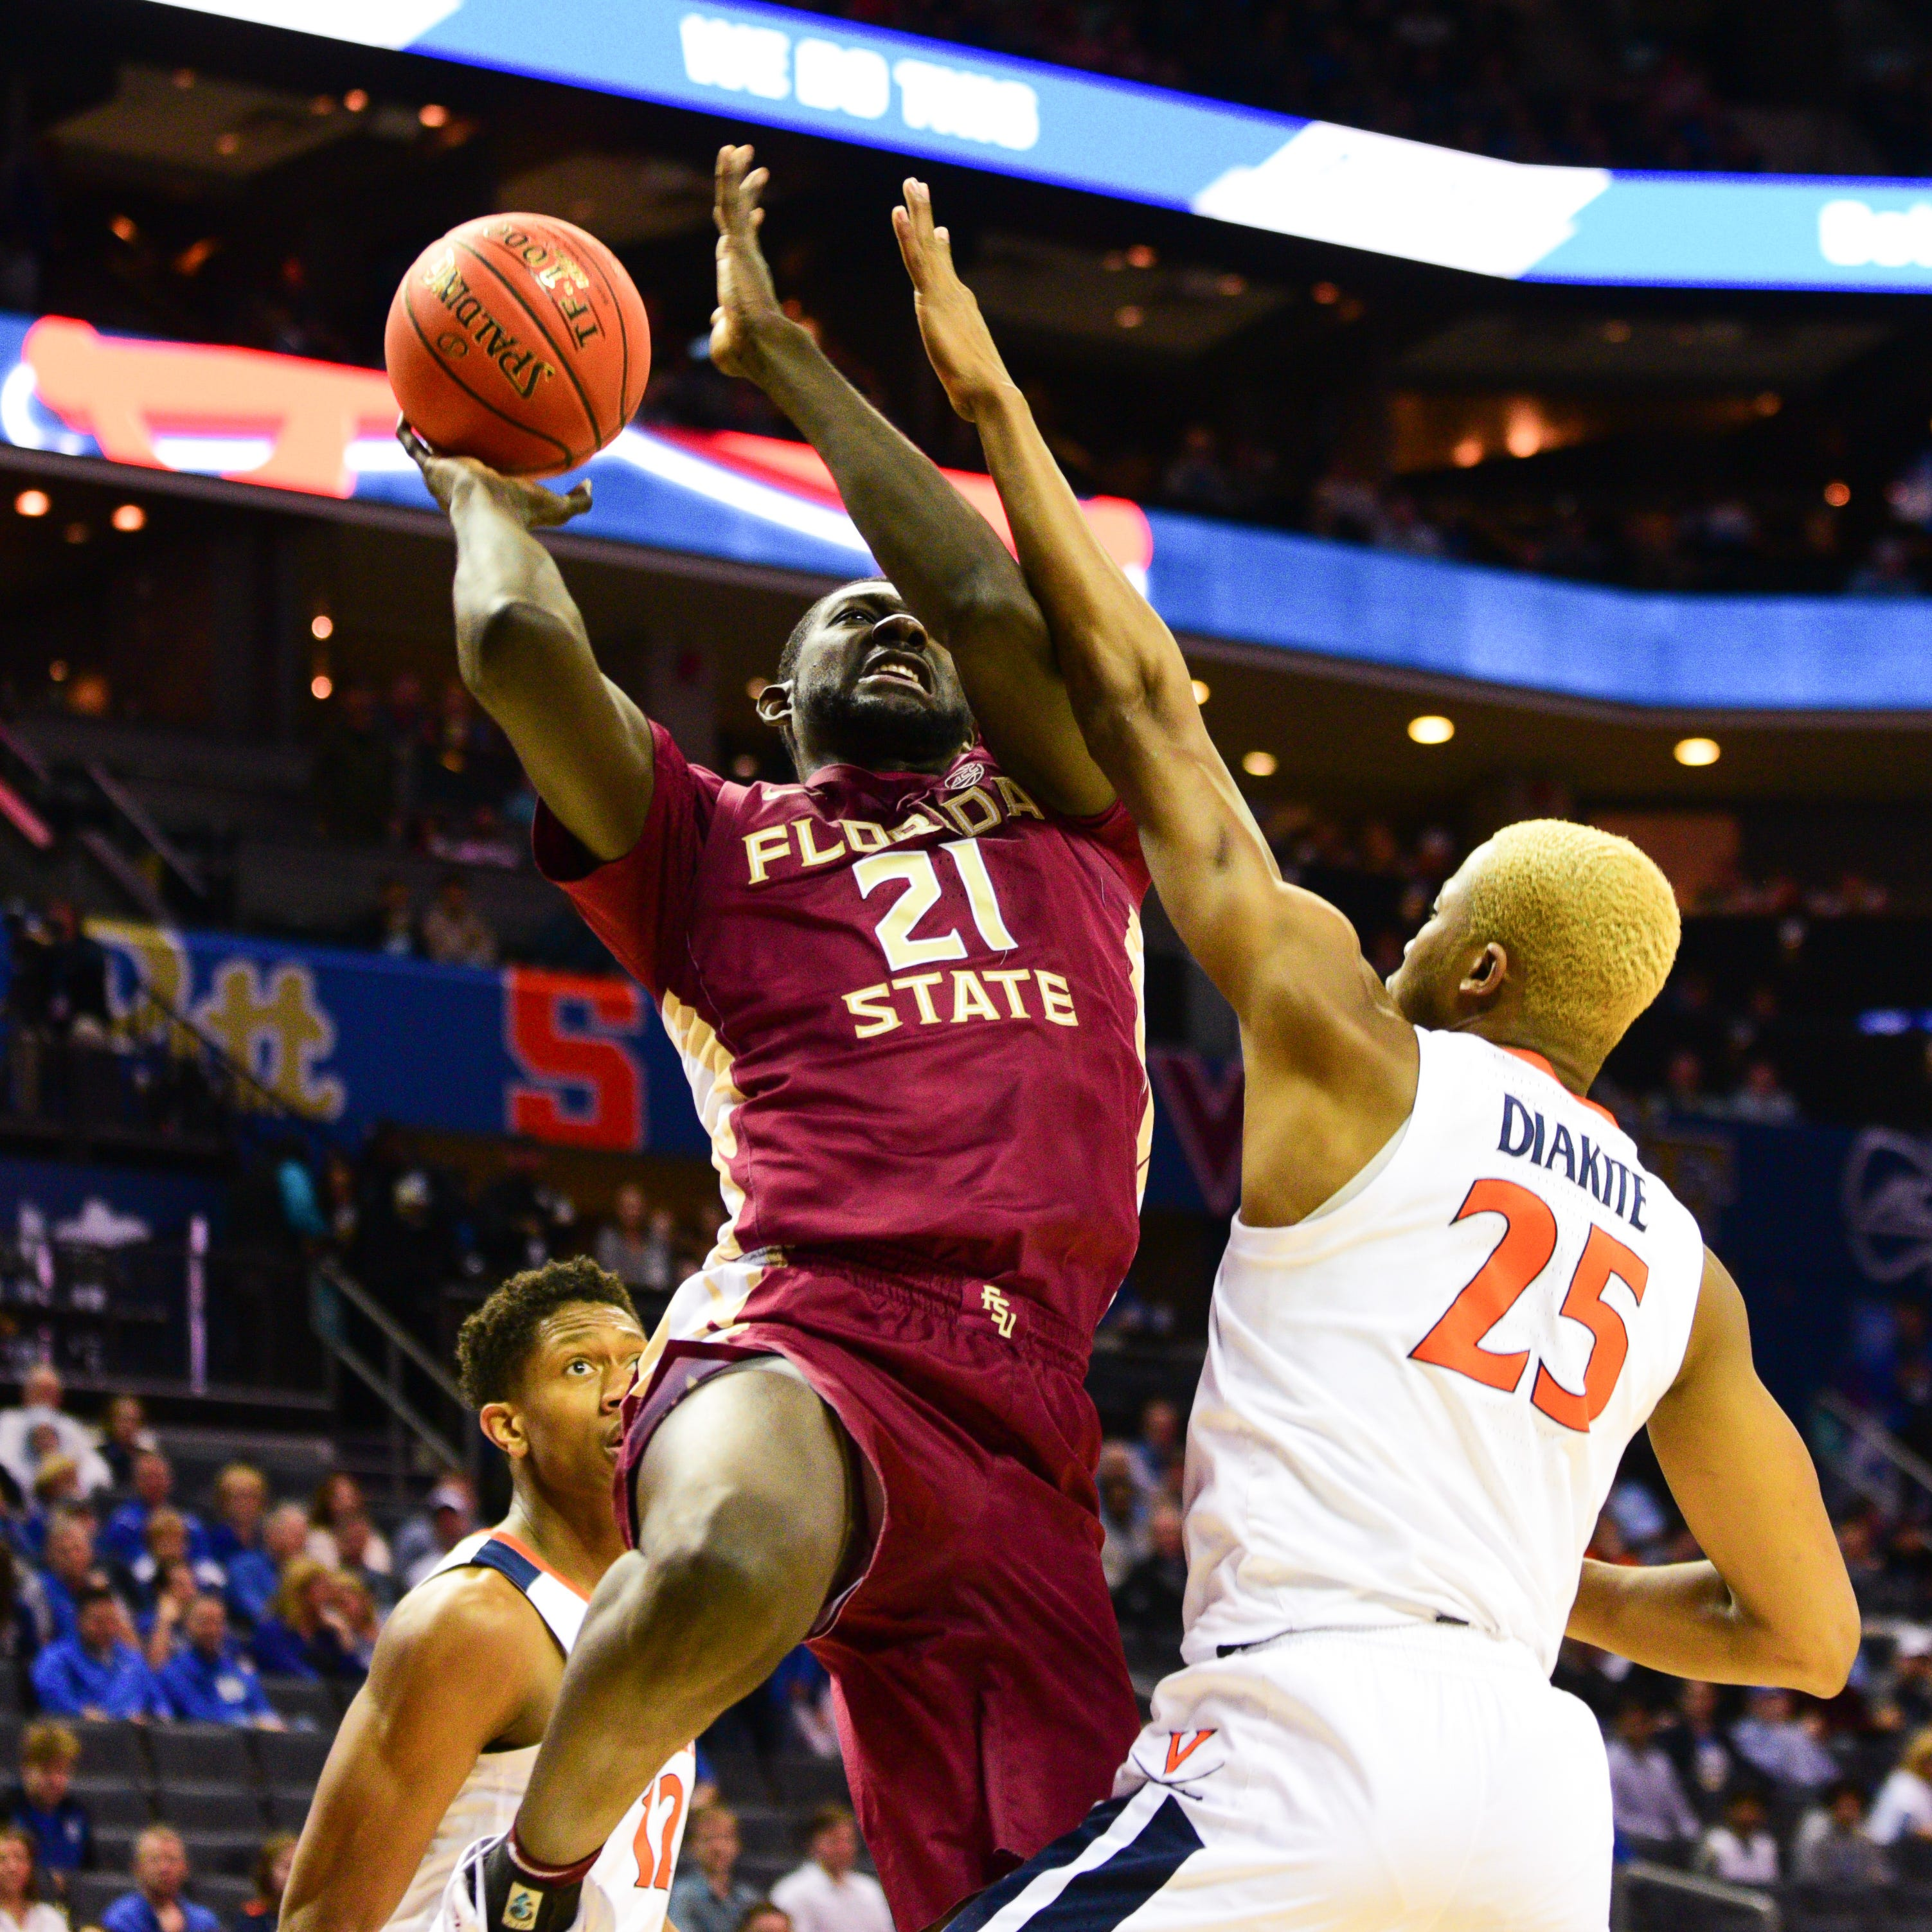 FSU deserving of top tourney seed